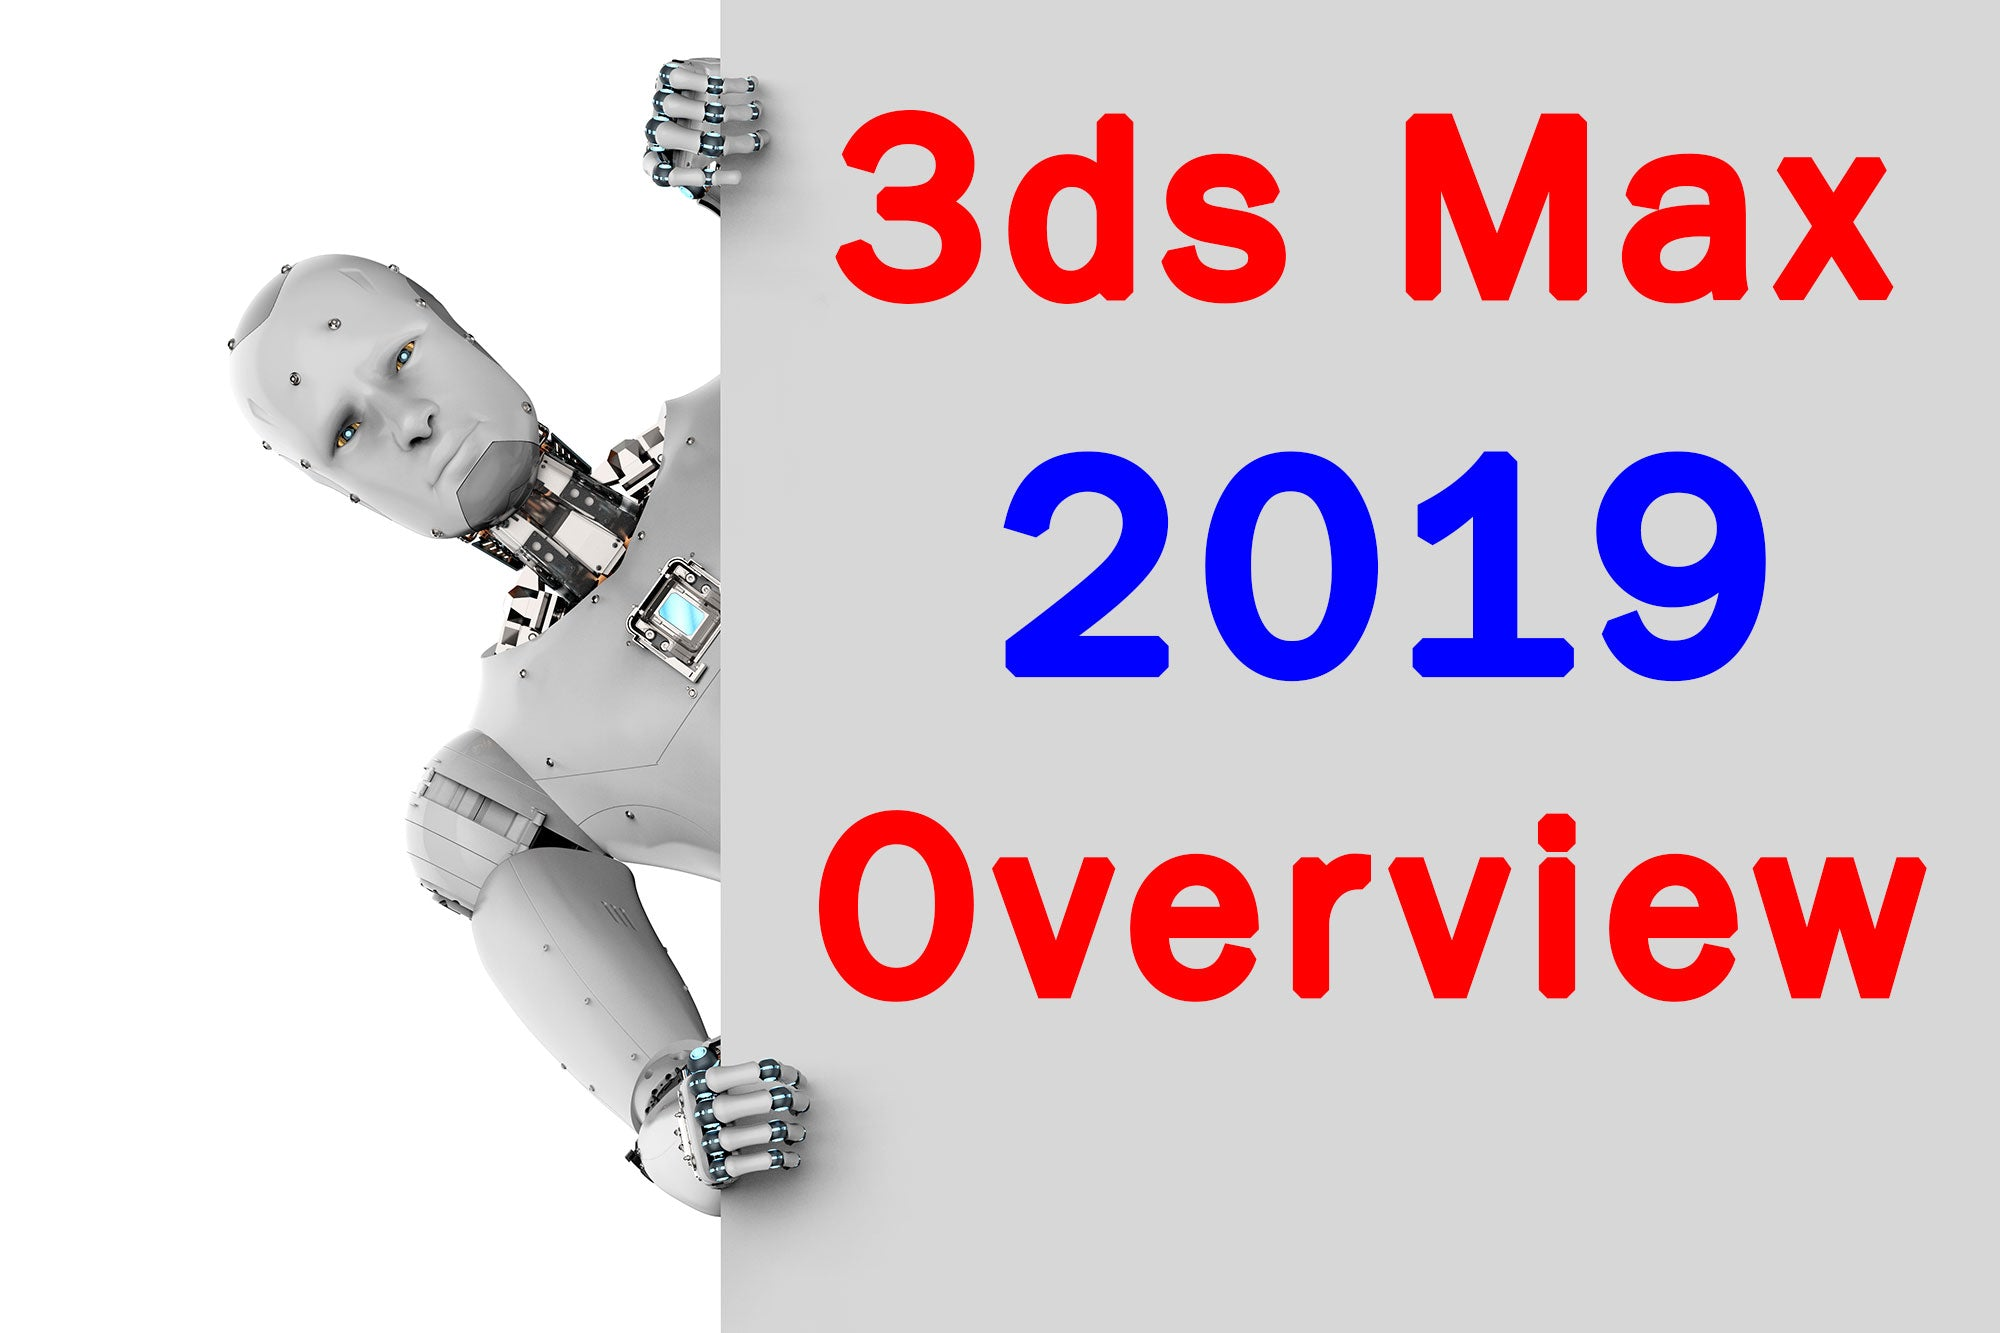 3dsMax 2019 Overview